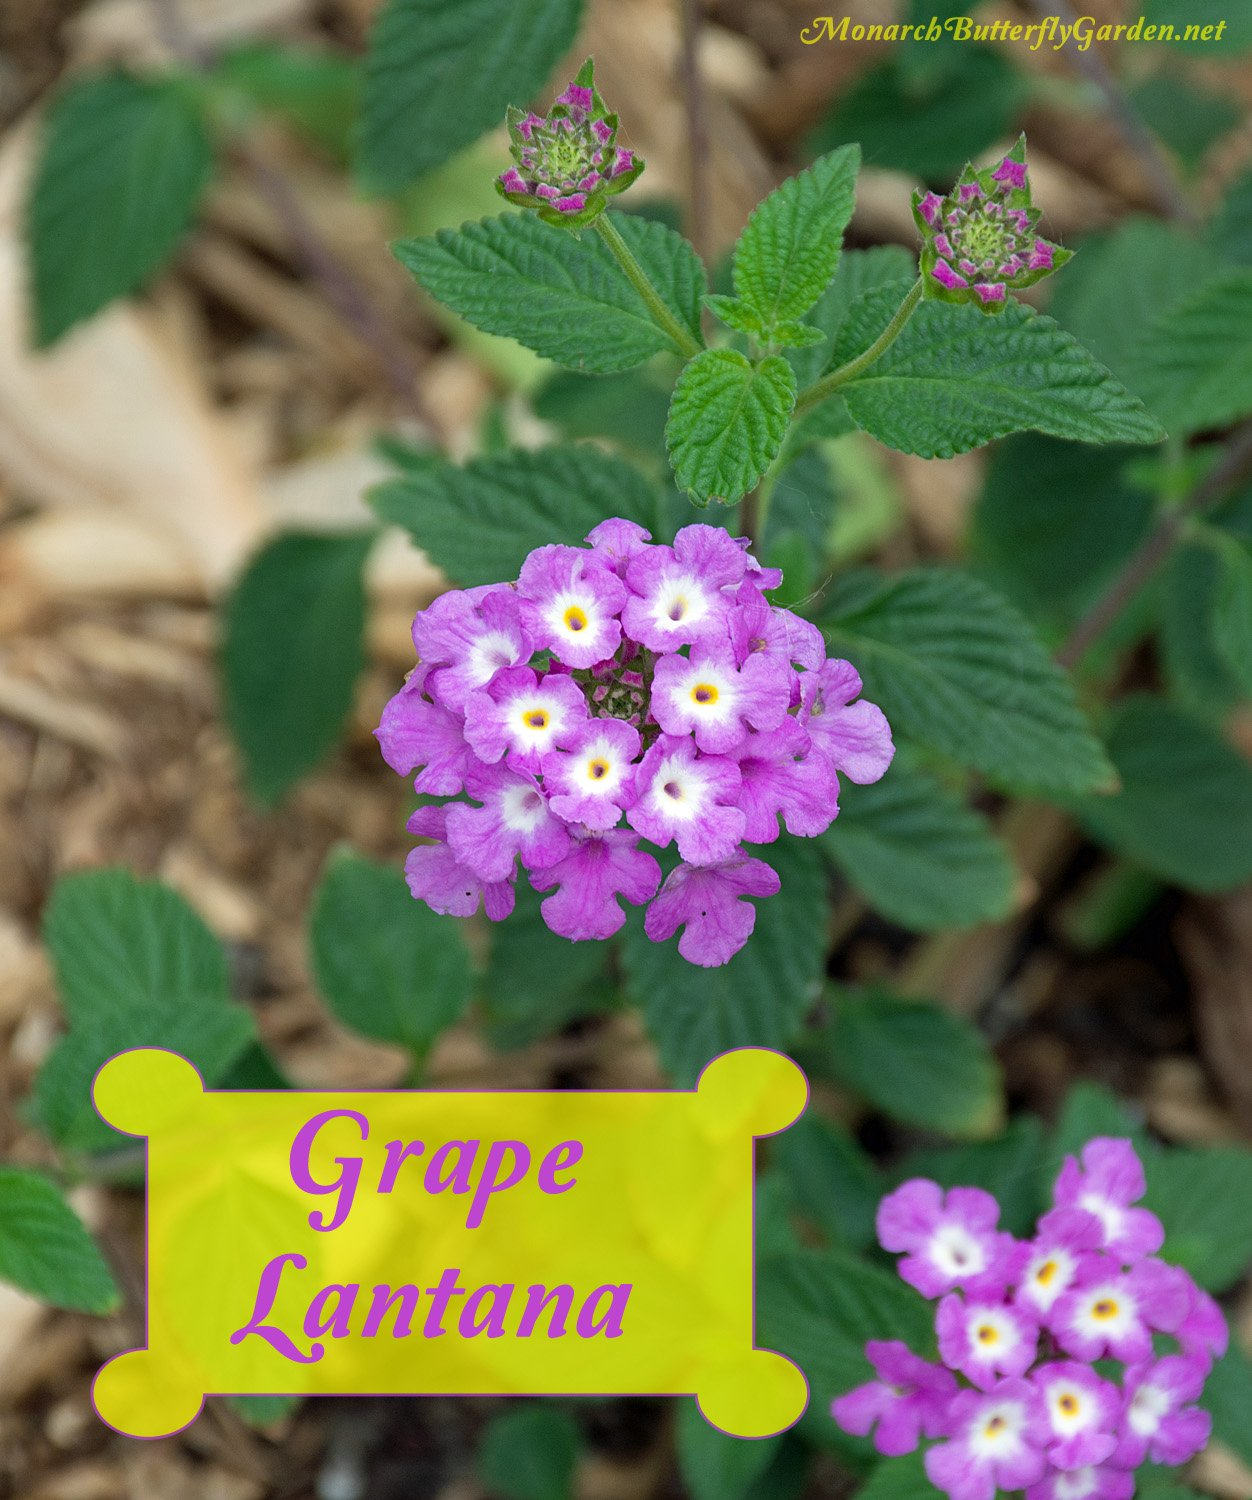 'Luscious Grape' Lantana Camara is a trailing lantana plant that works well as a container spiller or in raised beds. It attracts butterflies and other beneficial pollinators right to your garden doorstep.